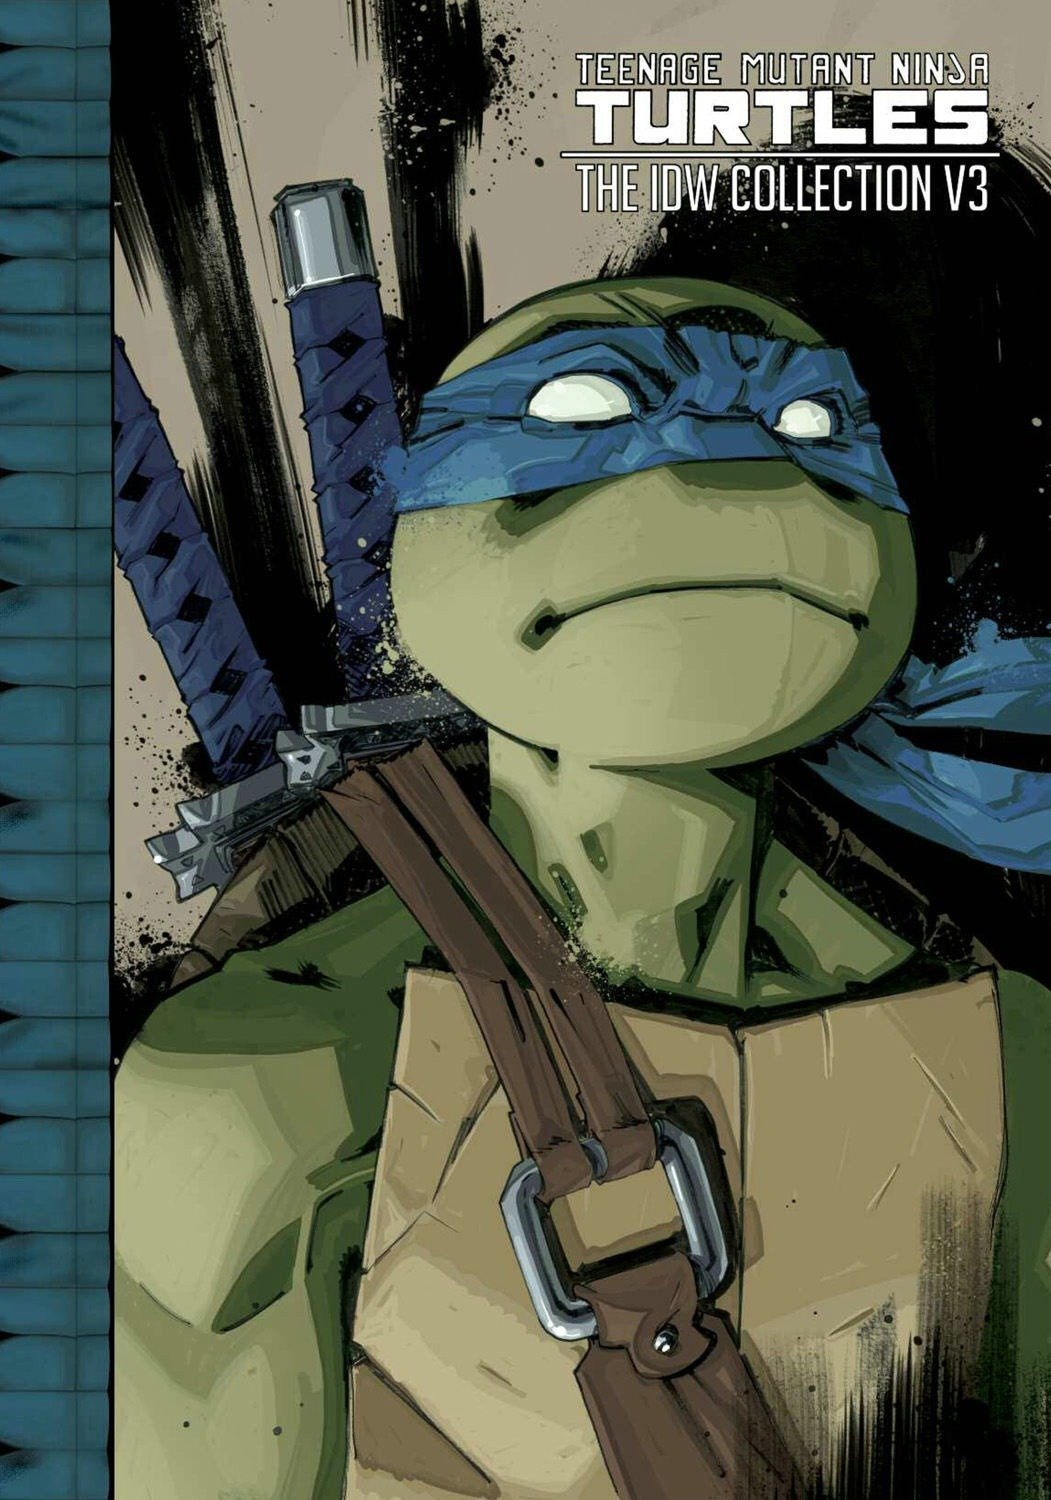 Teenage Mutant Ninja Turtles: The IDW Collection Volume 3 (TMNT IDW Collection) by Nickelodeon